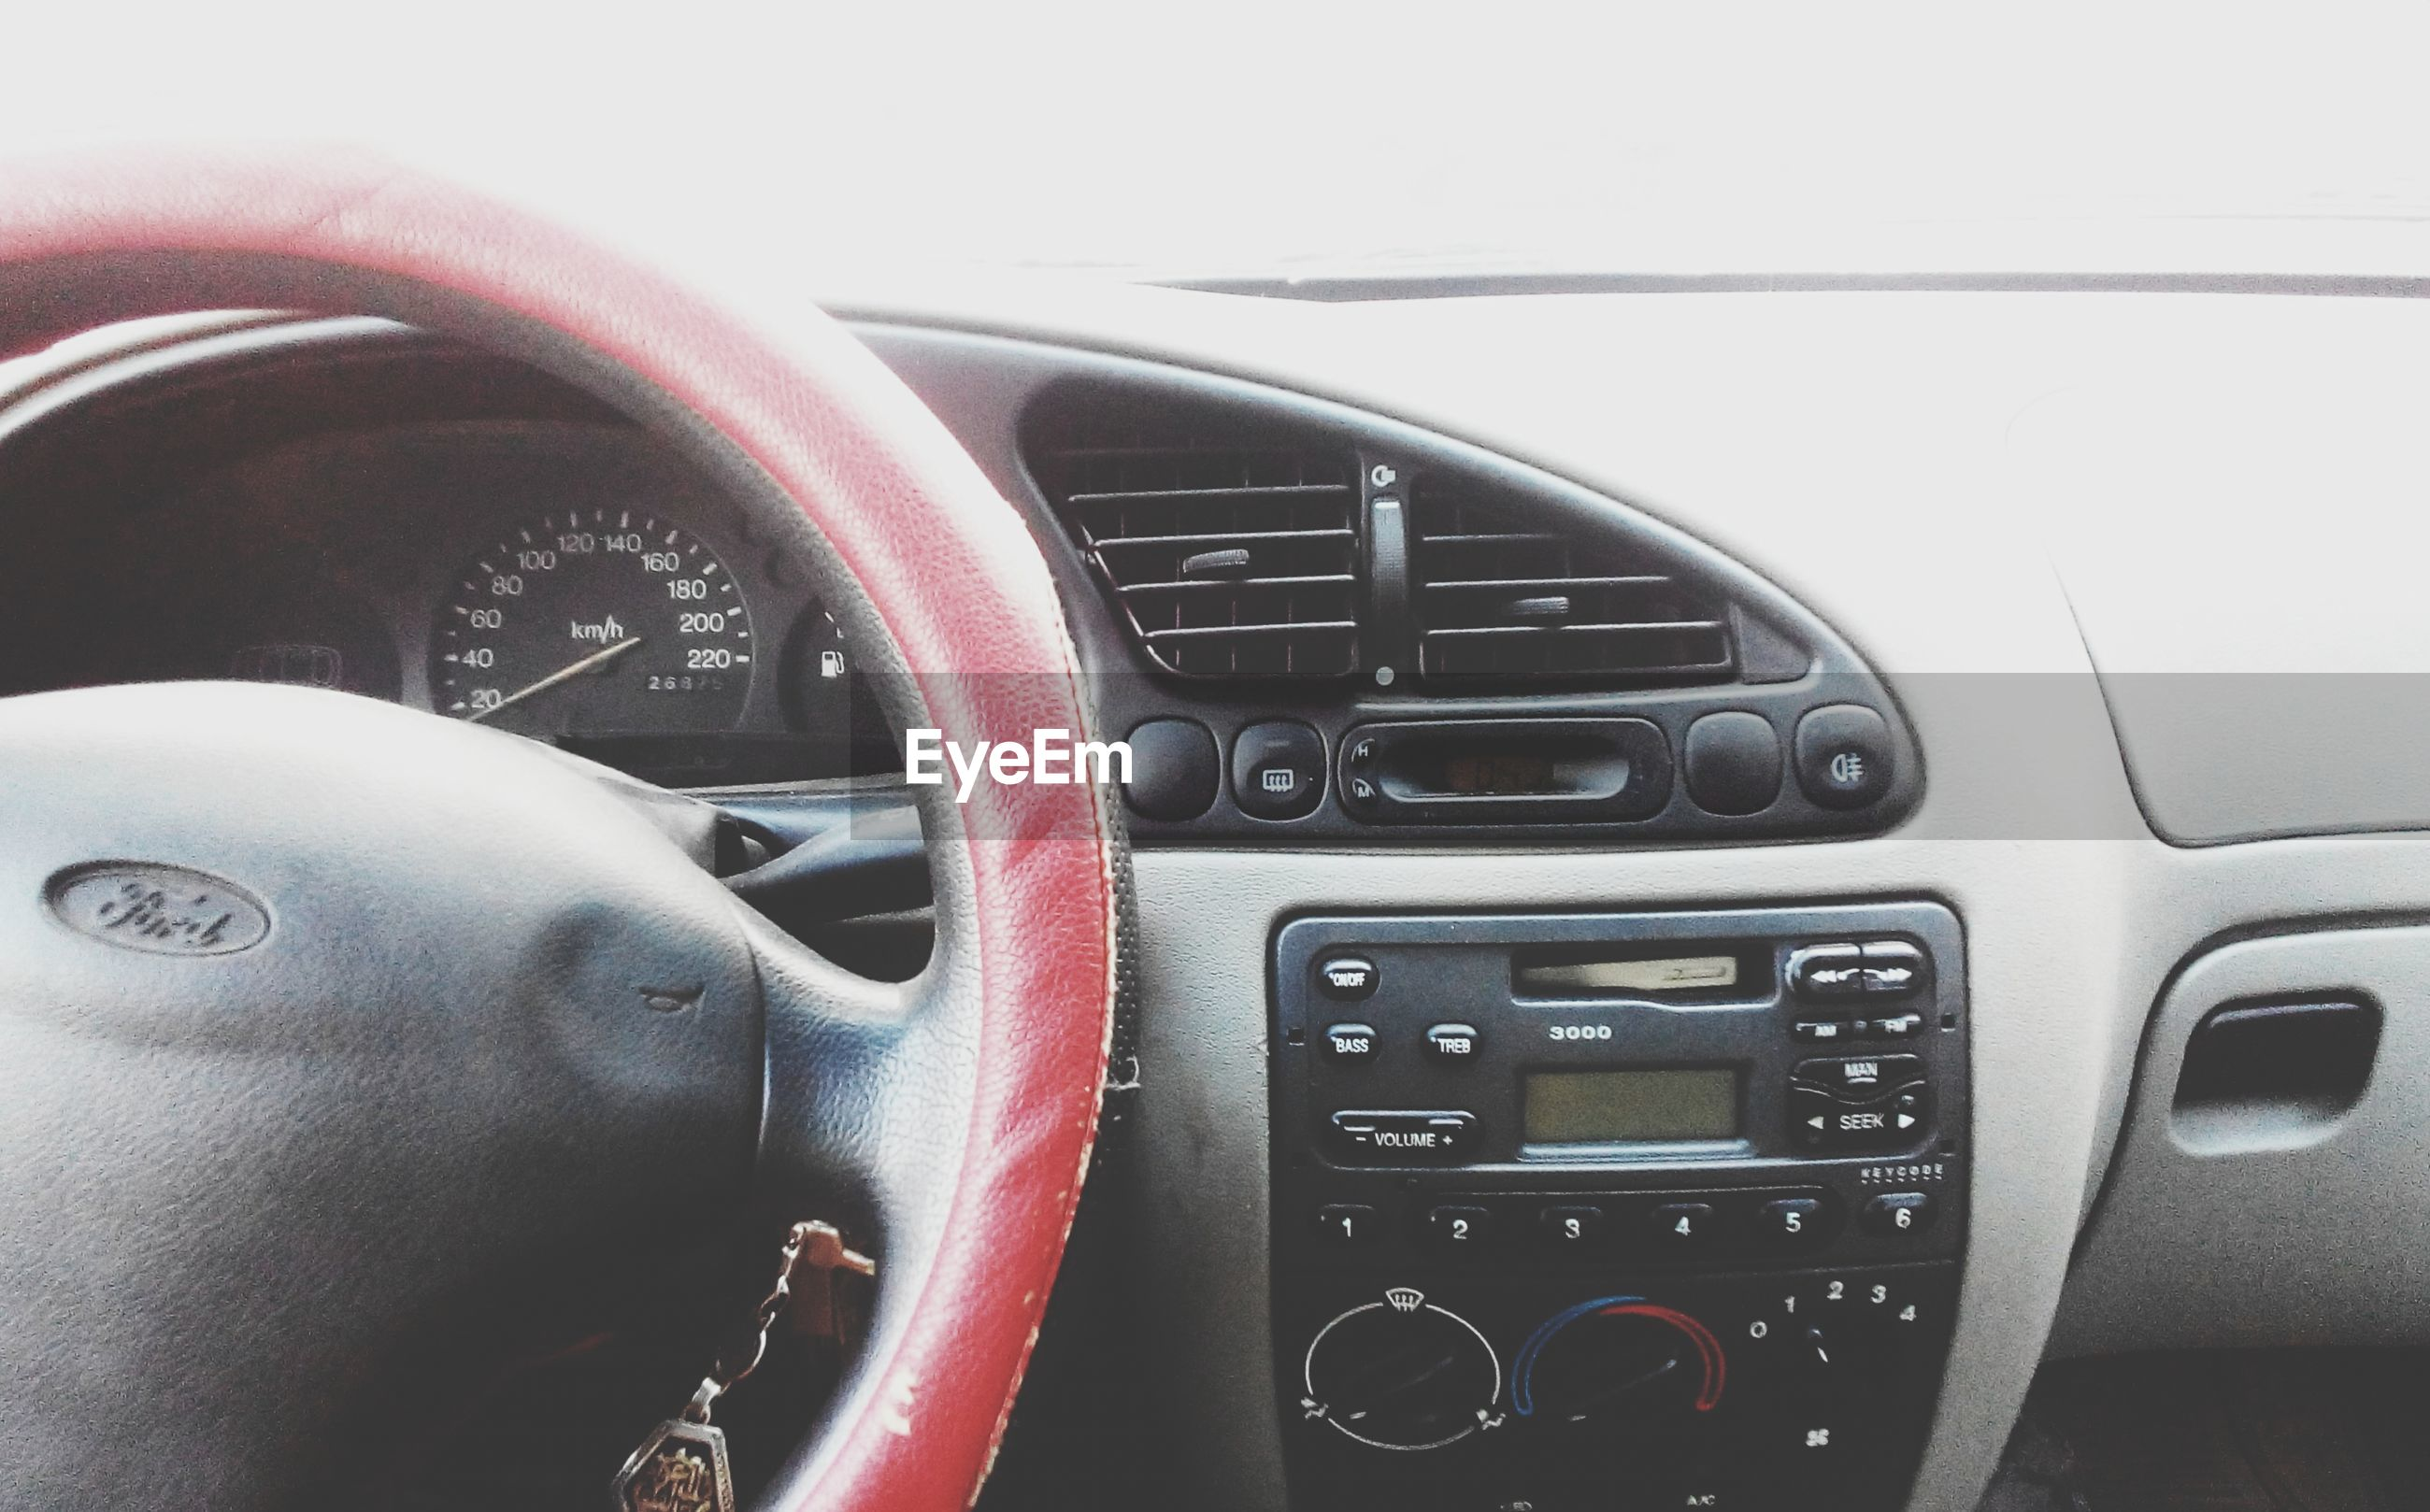 indoors, technology, close-up, transportation, old-fashioned, car, part of, land vehicle, connection, mode of transport, retro styled, metal, vehicle interior, machine part, equipment, cropped, control, no people, music, steering wheel